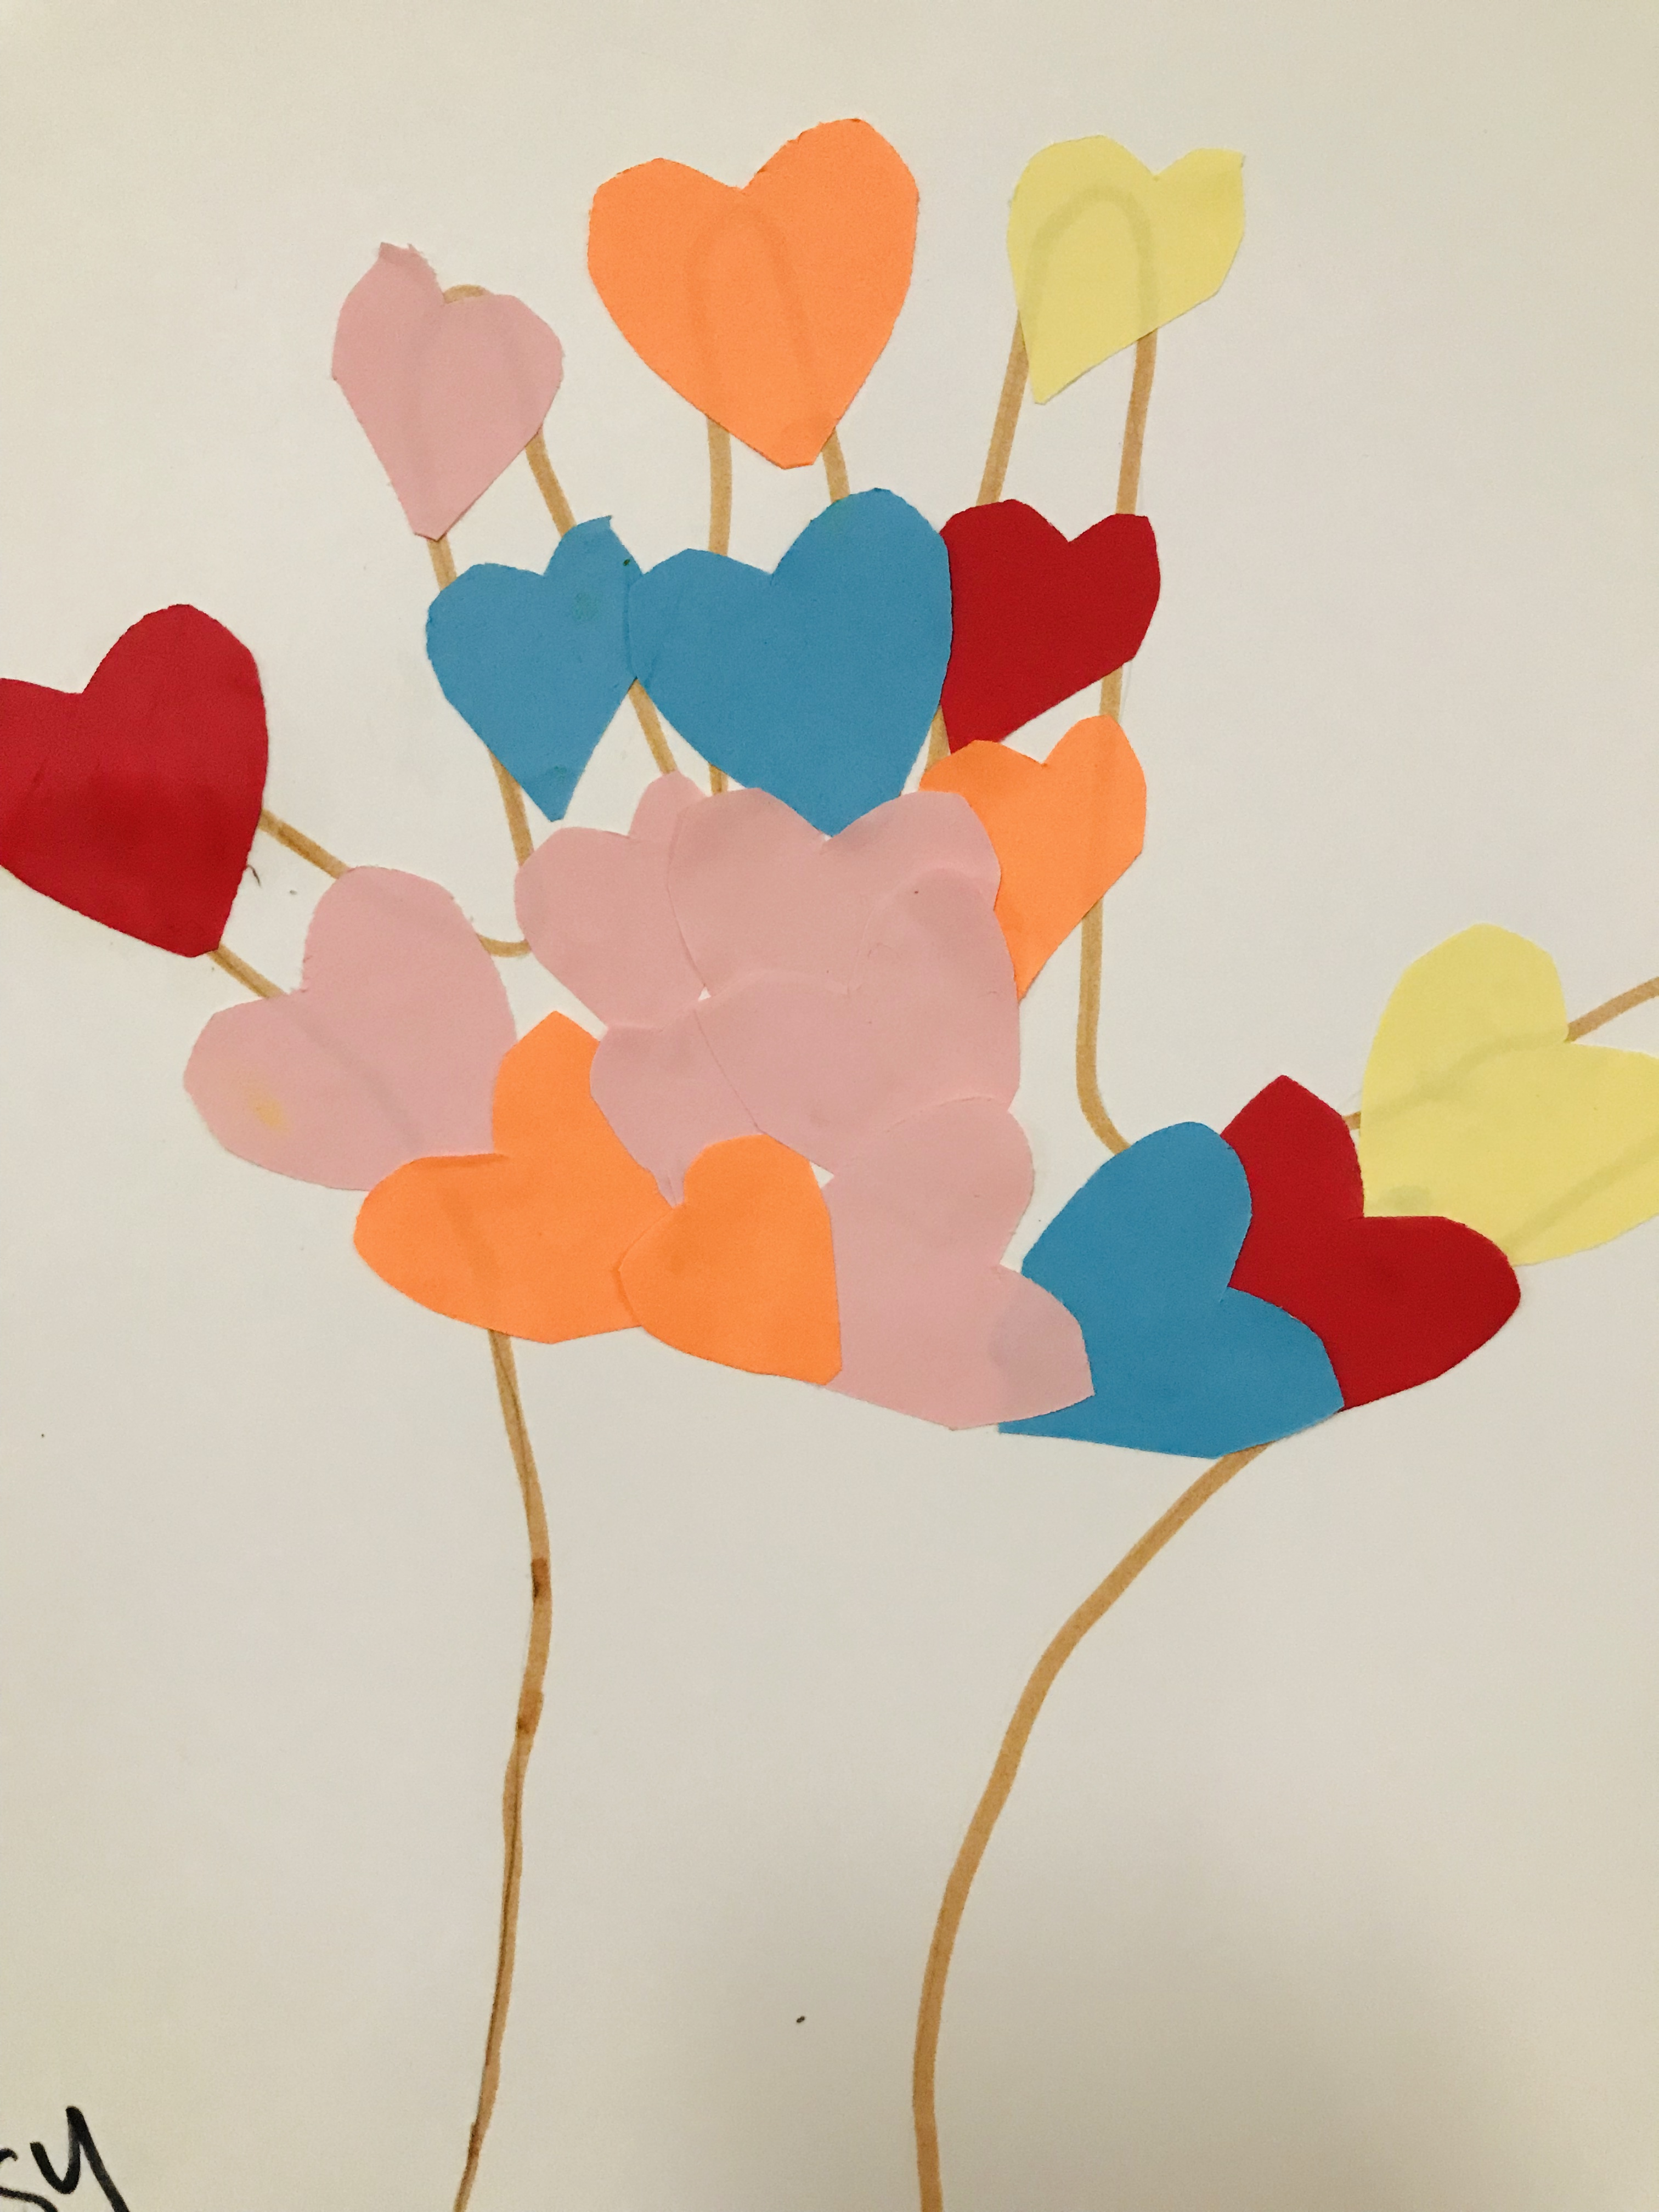 Gluing paper hearts on hand print